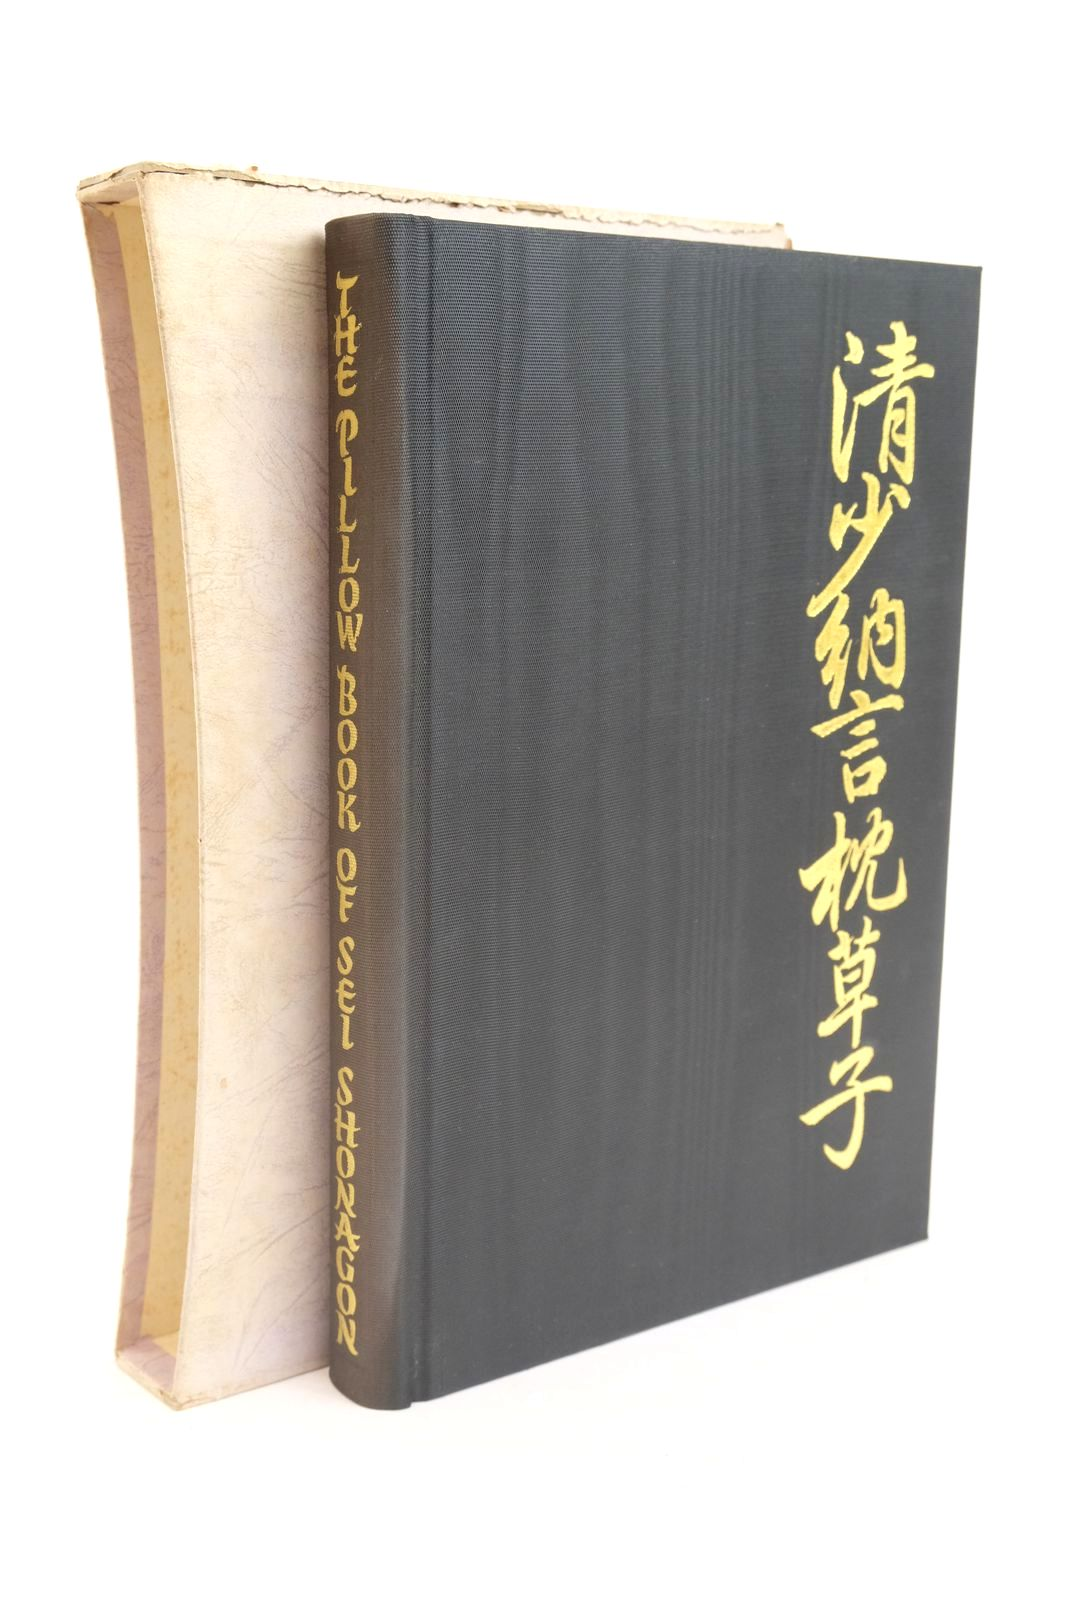 Photo of THE PILLOW BOOK OF SEI SHONAGON written by Shonagon, Sei Morris, Ivan illustrated by Deane, Jasper published by Folio Society (STOCK CODE: 1320032)  for sale by Stella & Rose's Books